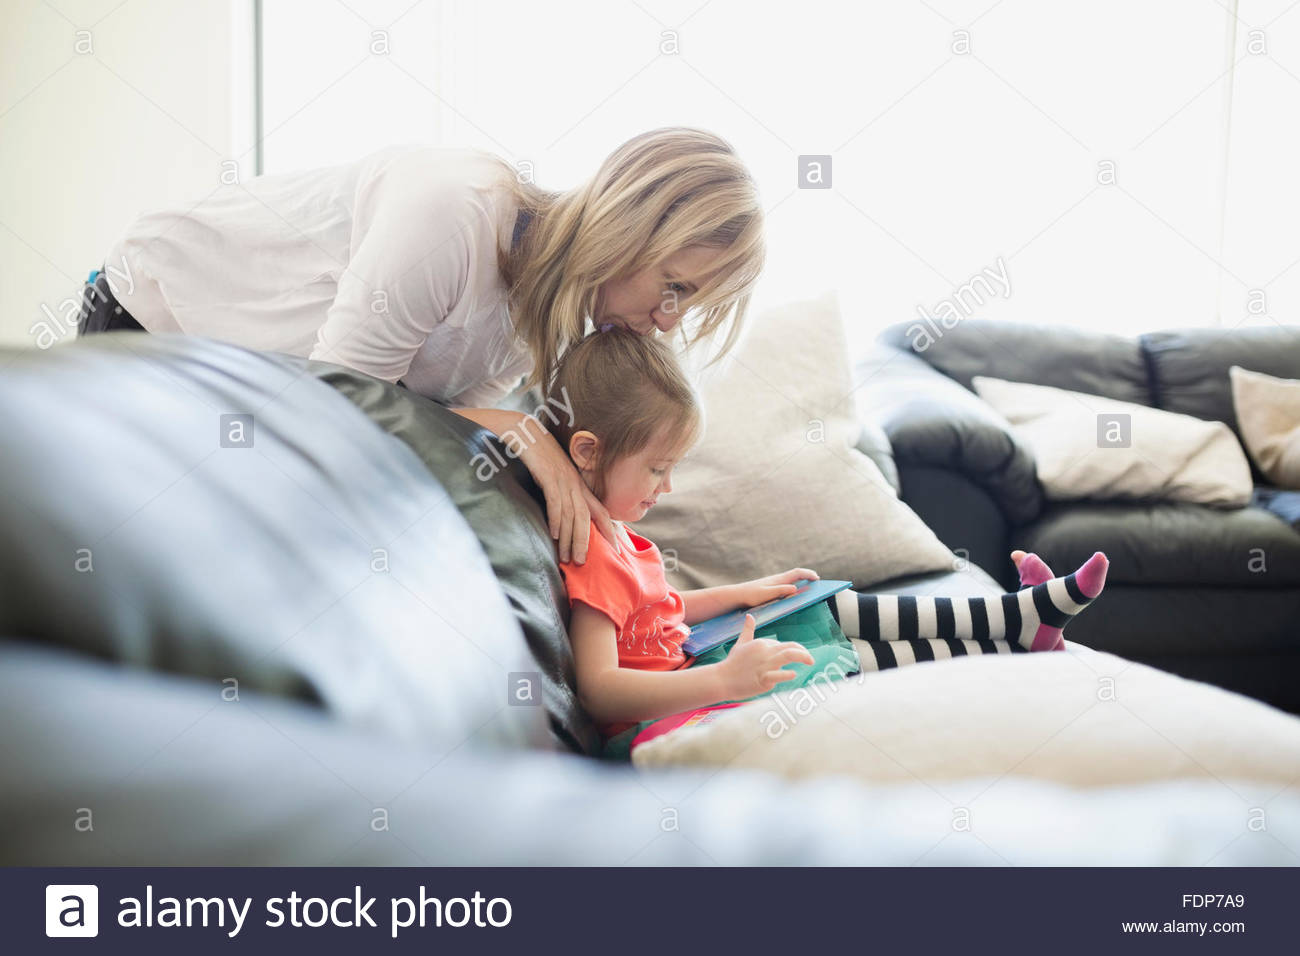 Mother watching daughter read book living room sofa - Stock Image